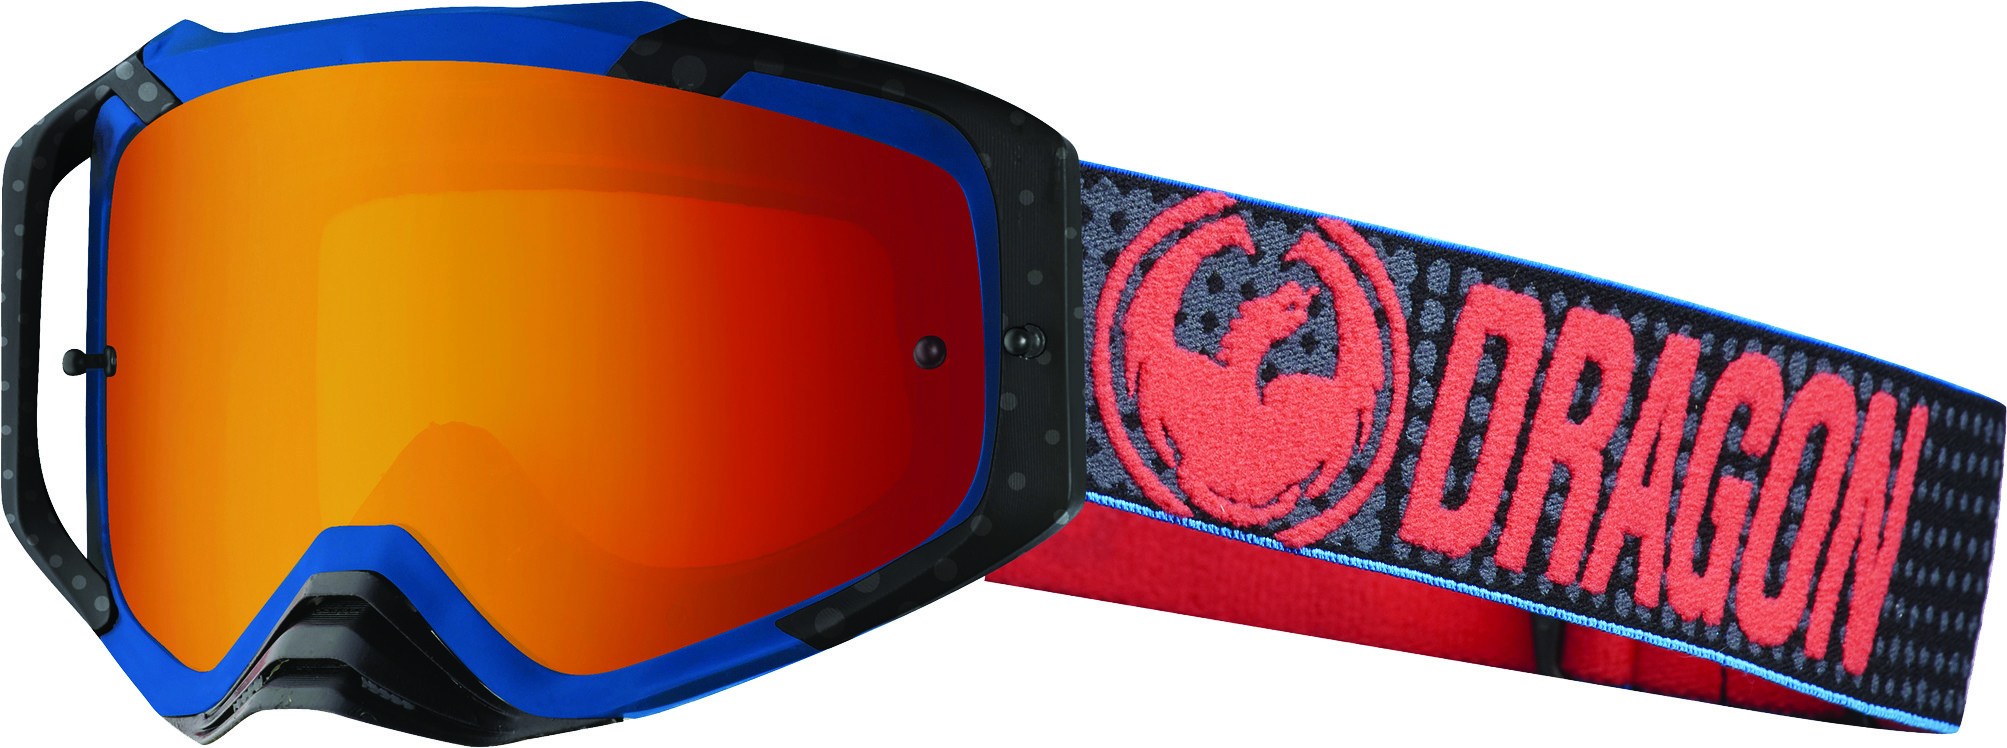 Mxv Max Goggle Nate Adams W/Luma Red Ion Lens